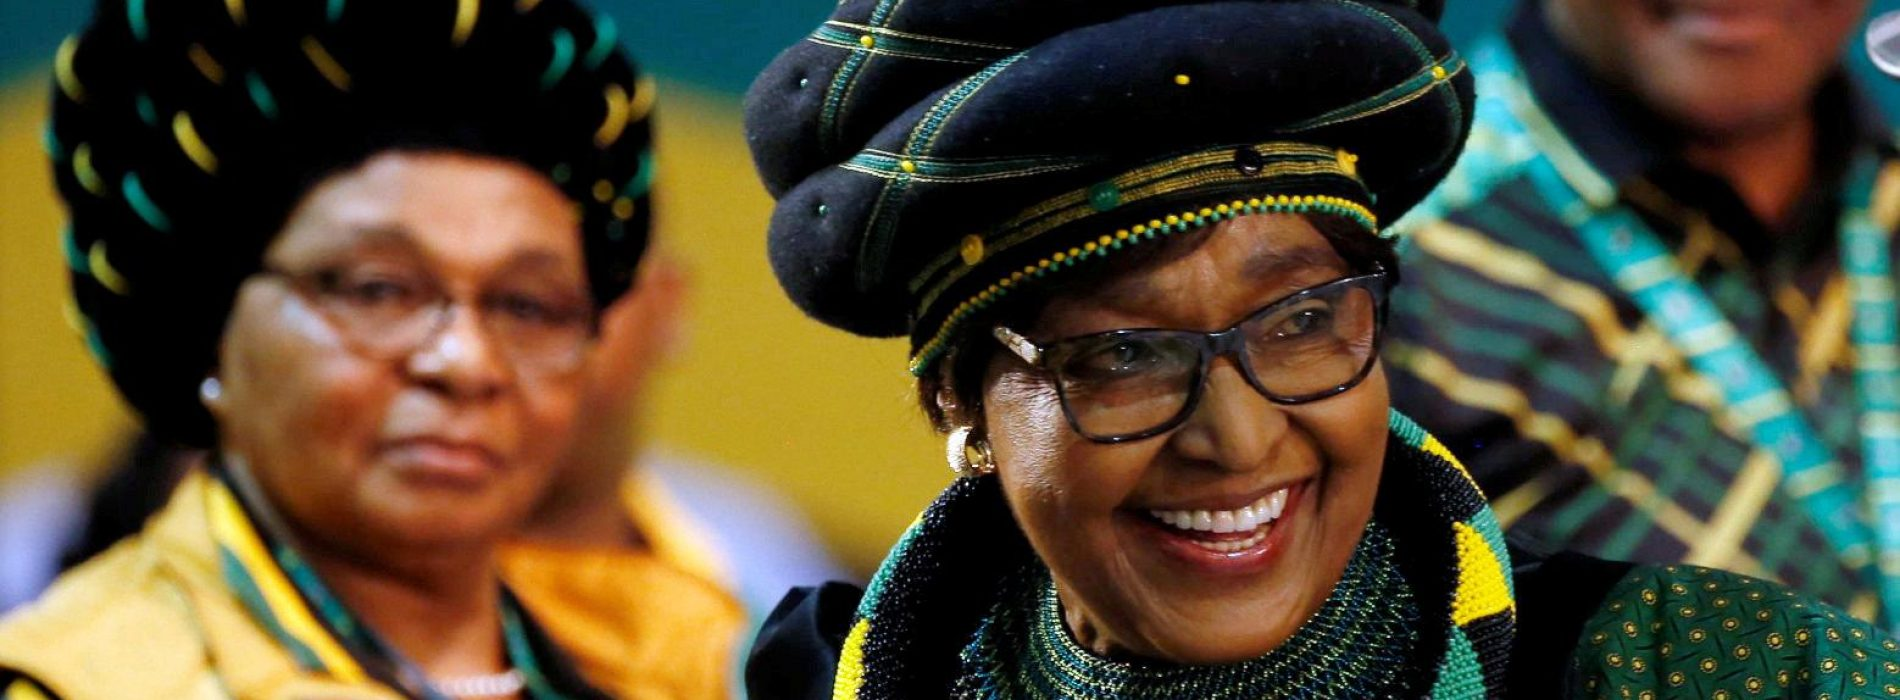 Winnie: The mother who chose to defend her children